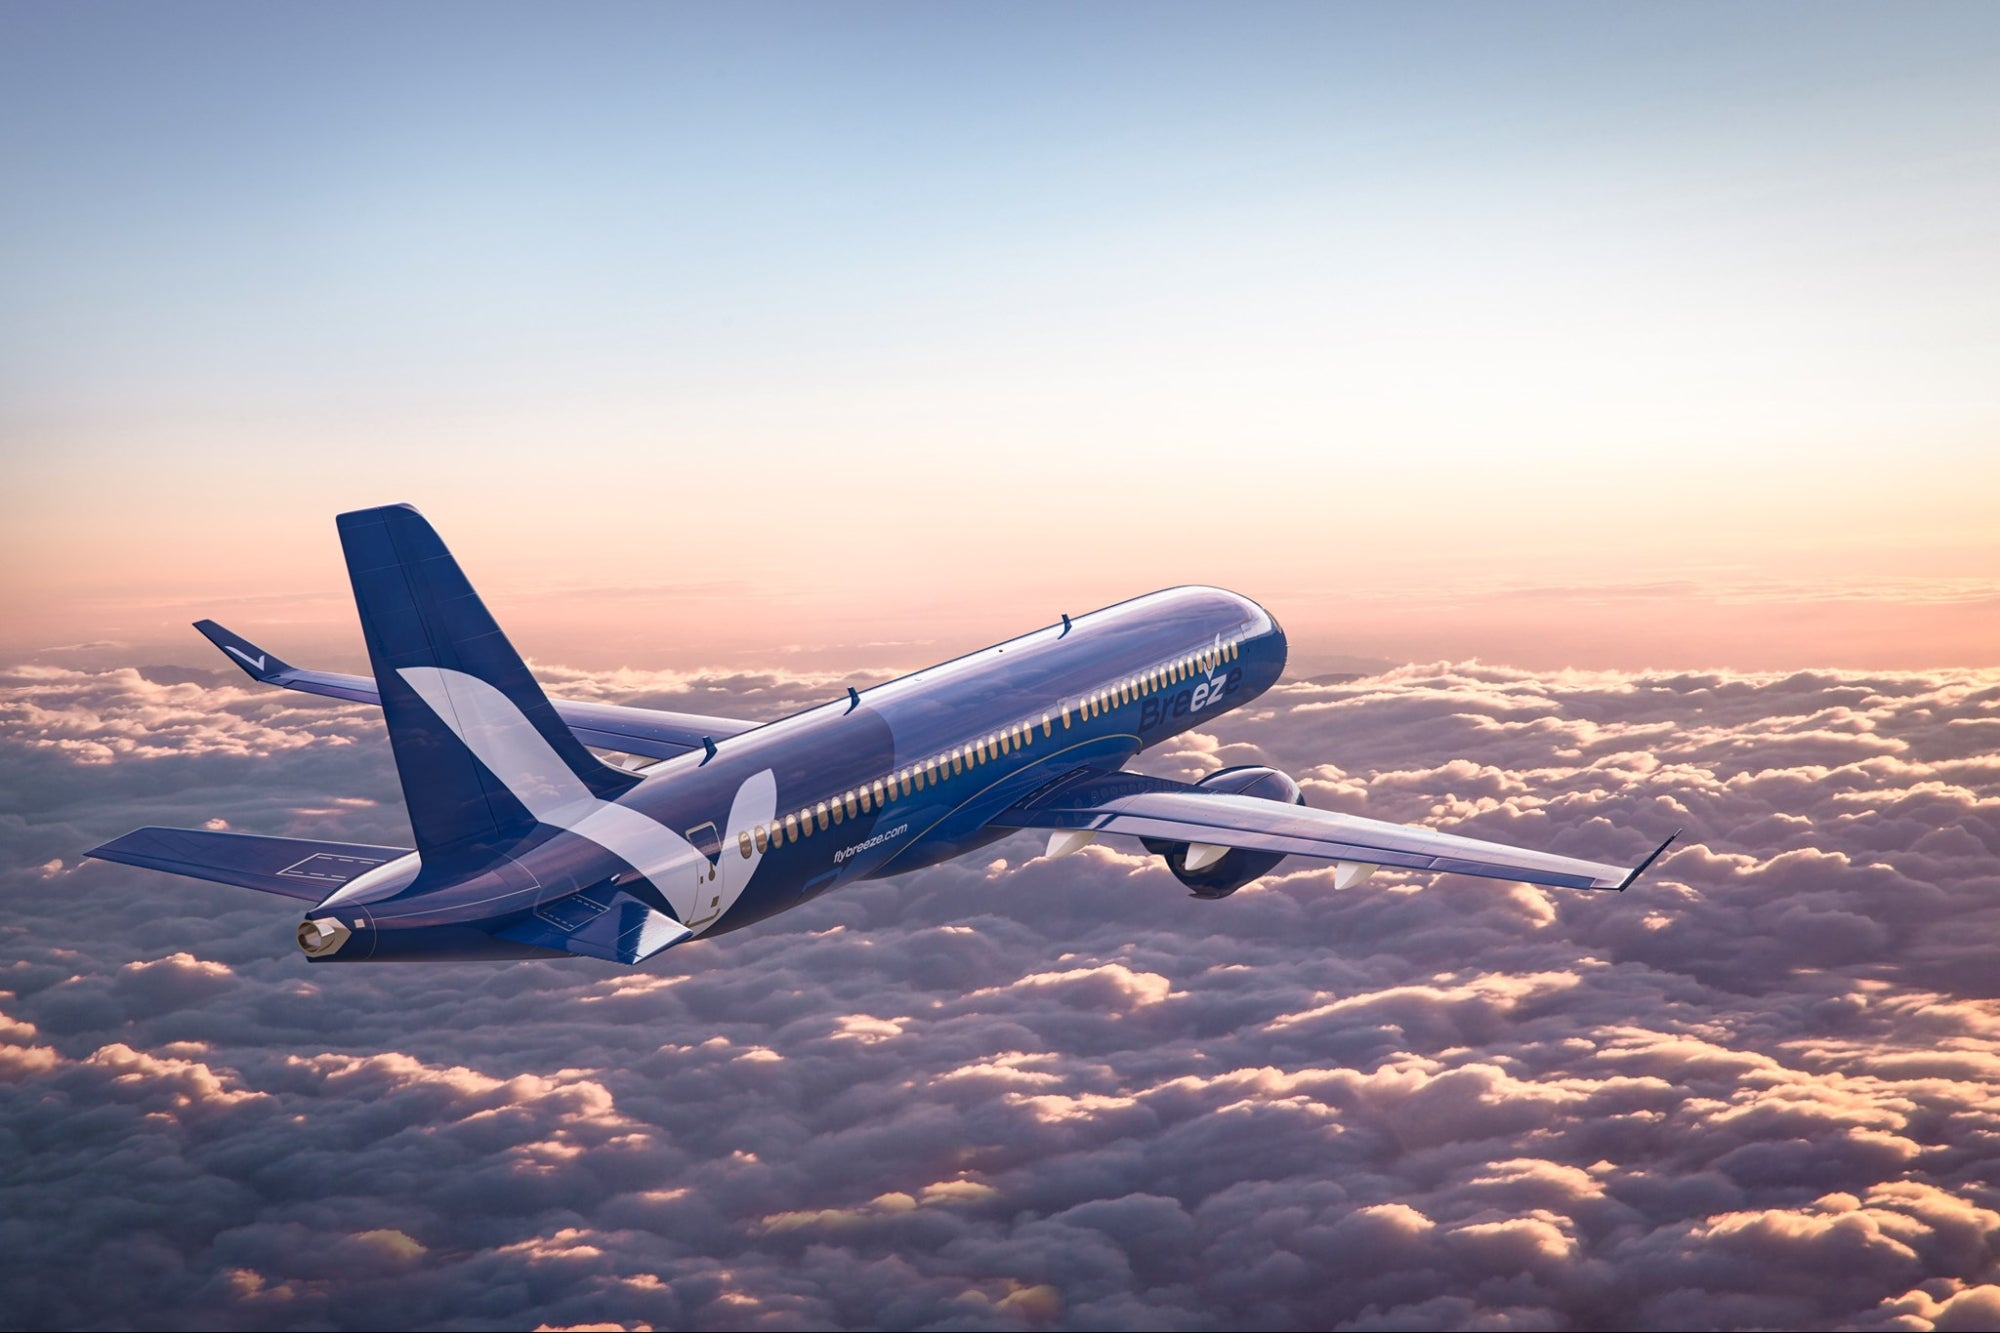 JetBlue Founder Launches Airline With $39 Flights